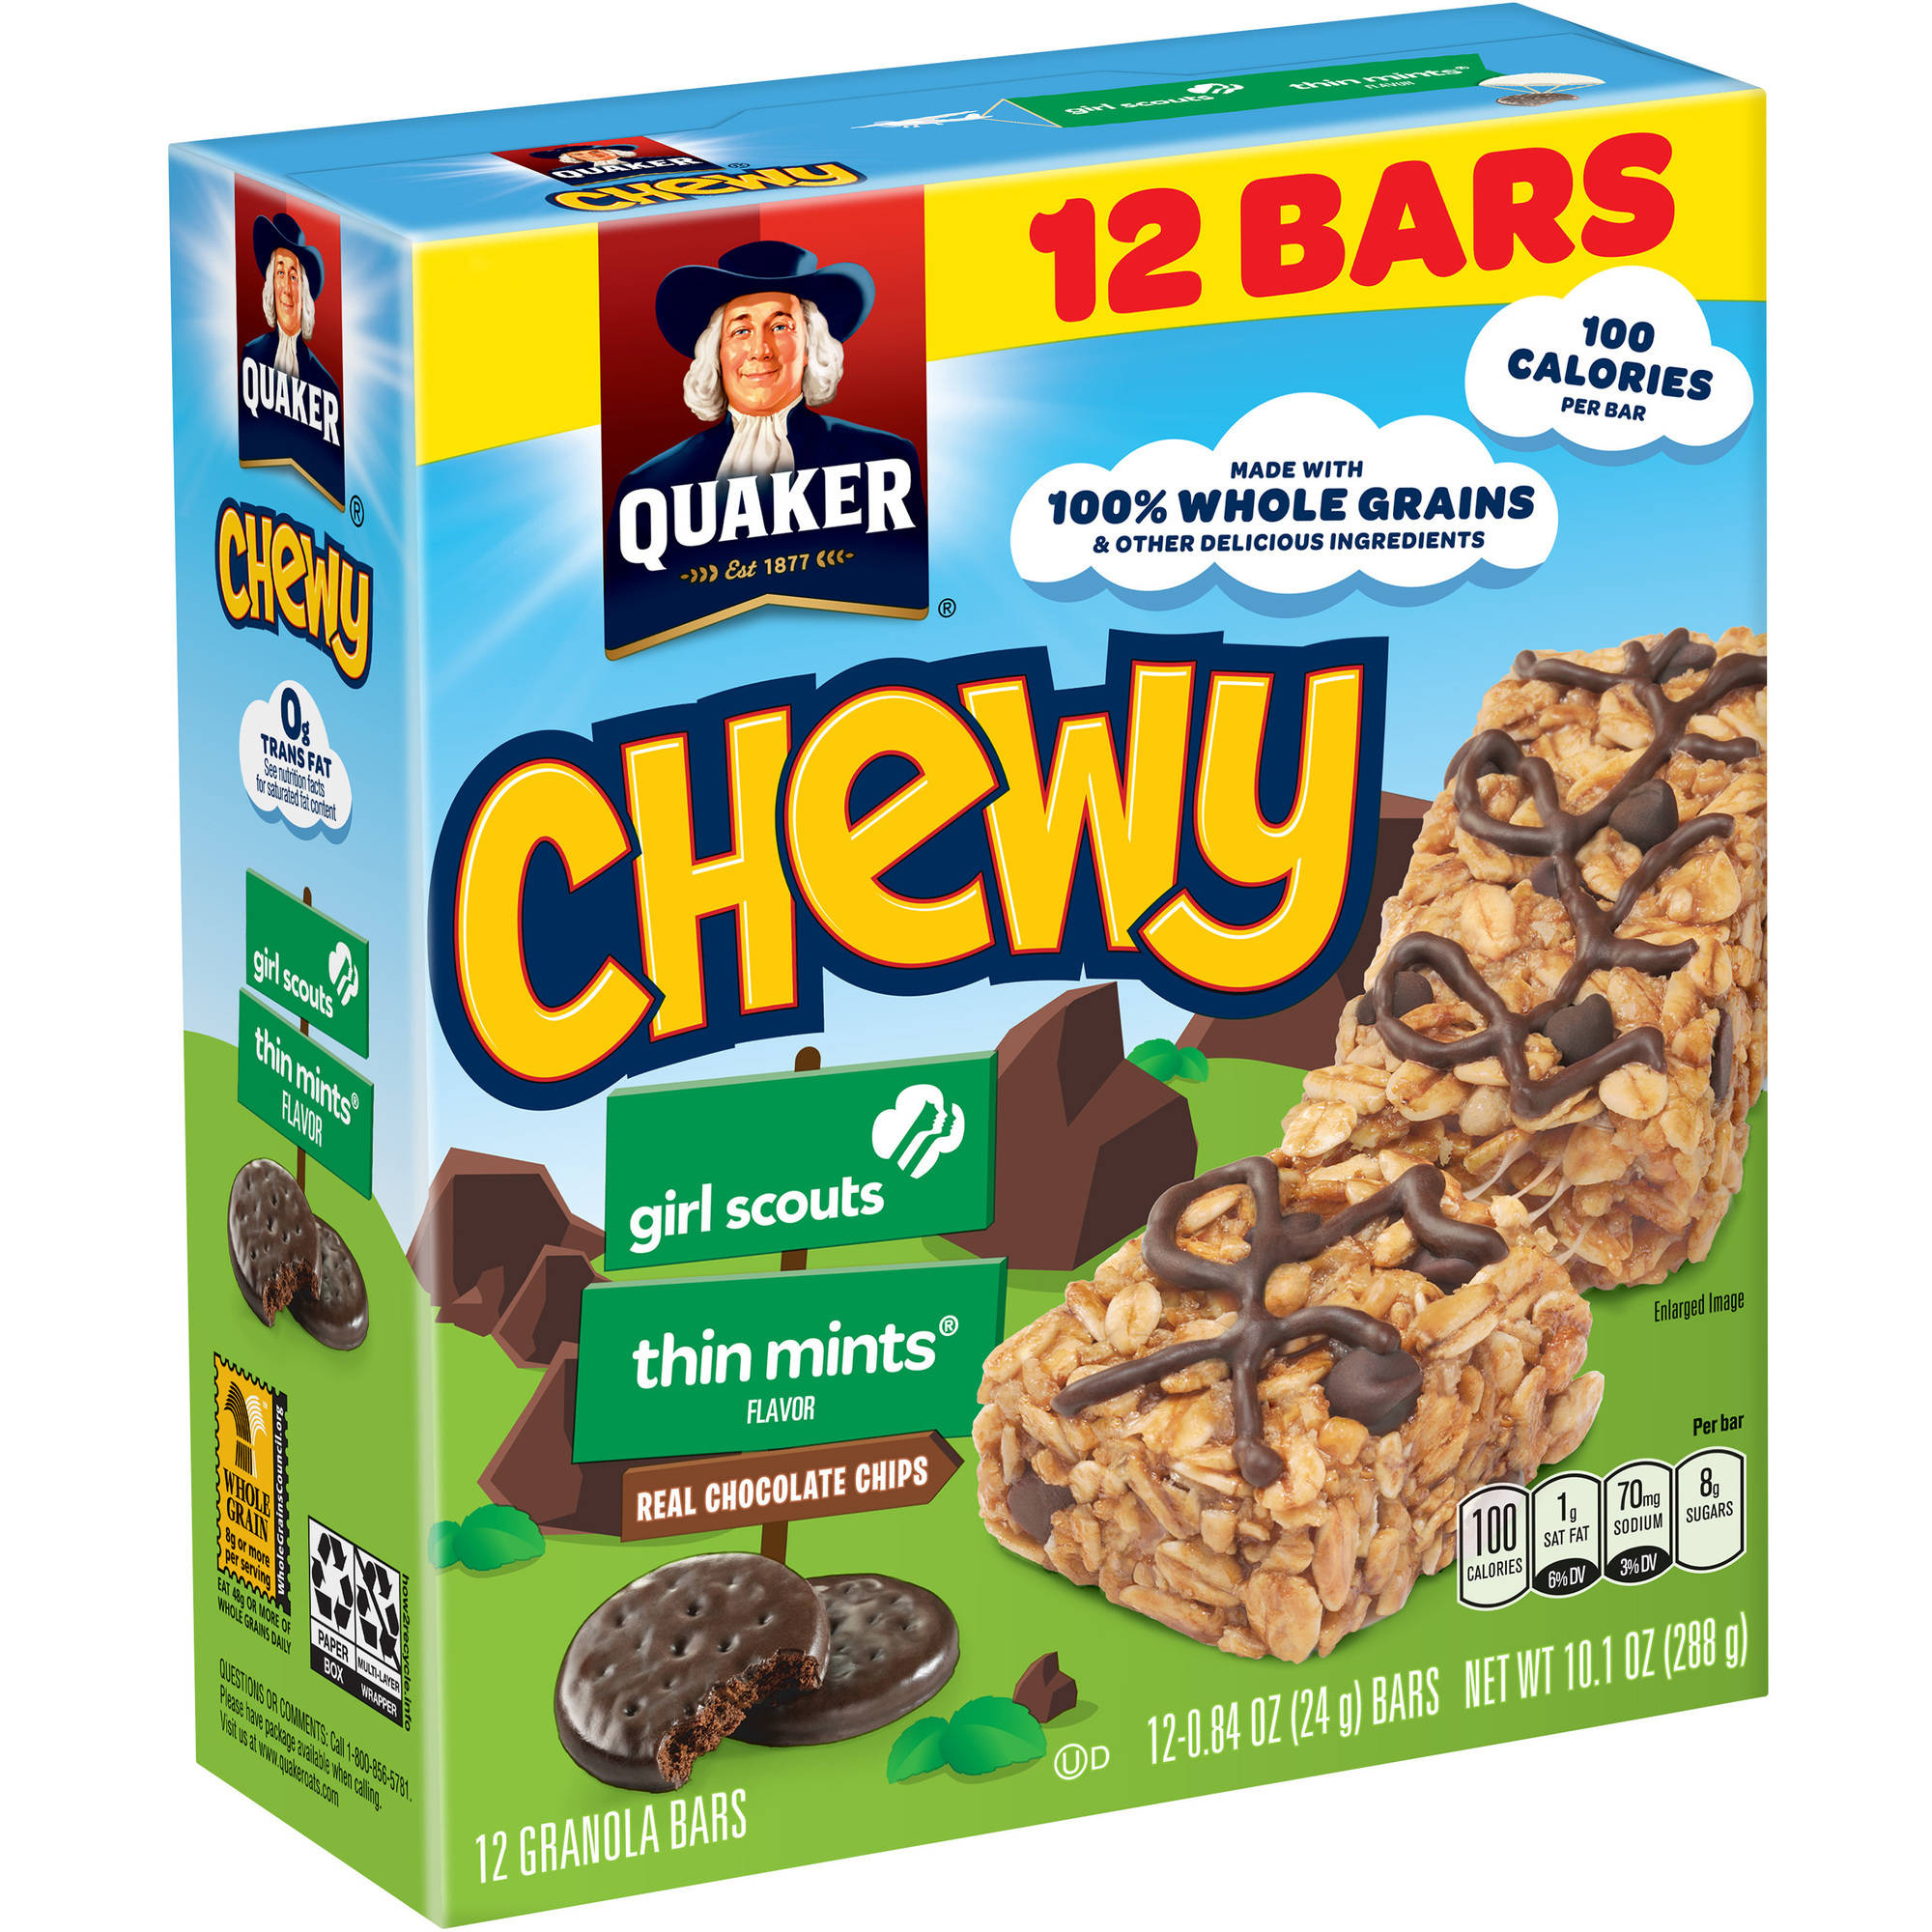 Quaker Chewy Girl Scouts Thin Mints Granola Bars, 0.84 oz, 12 count